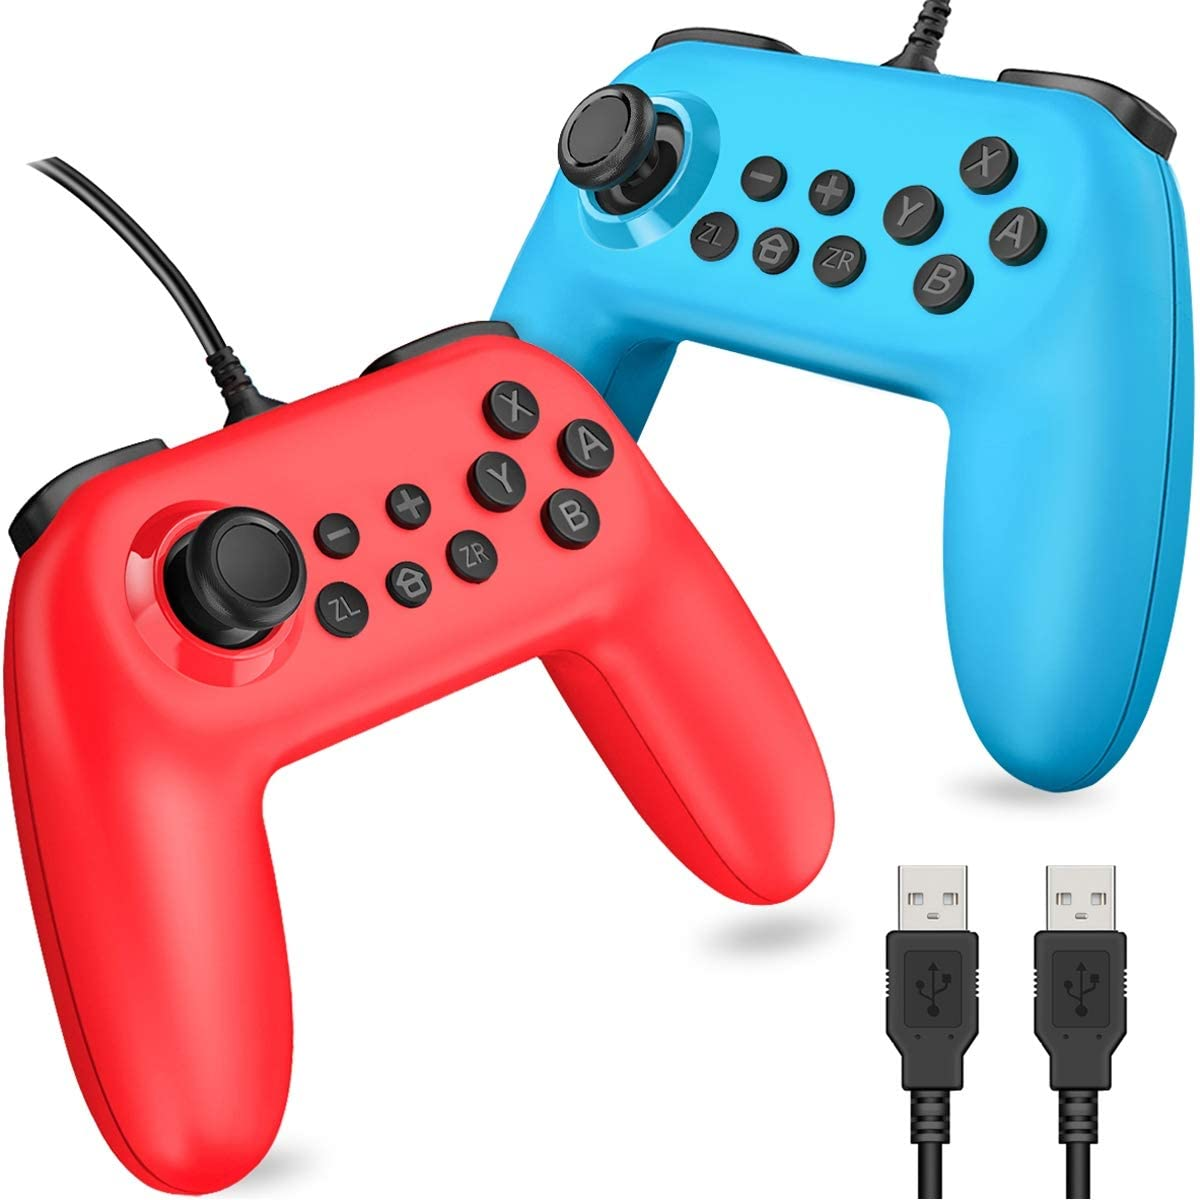 BEBONCOOL Wired Switch Controller, Wired Controller for Nintendo Switch, Switch Remote Gamepad Alternative of Joy-Con